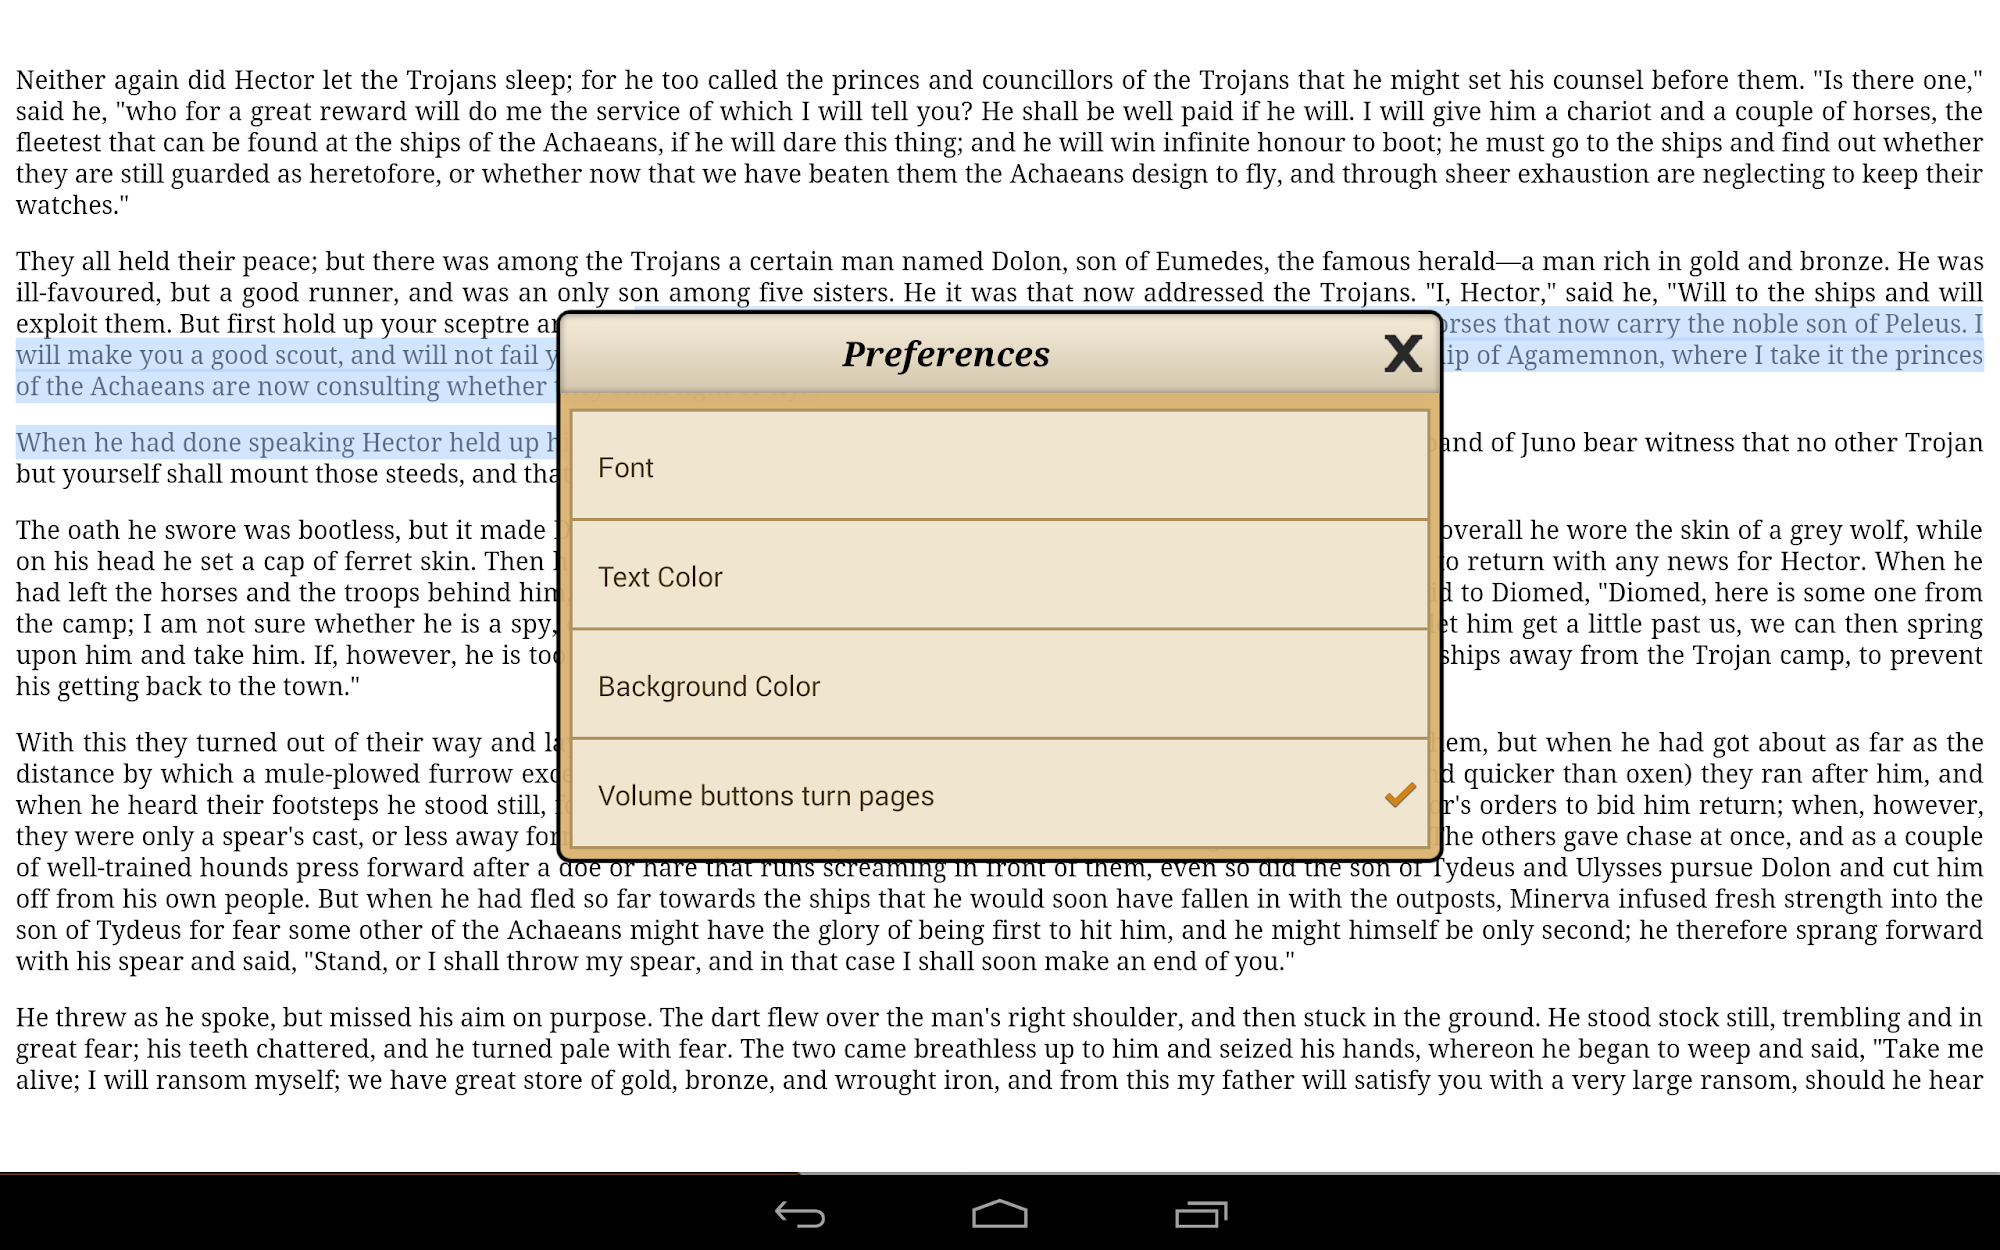 Ebook Reader screenshot #9